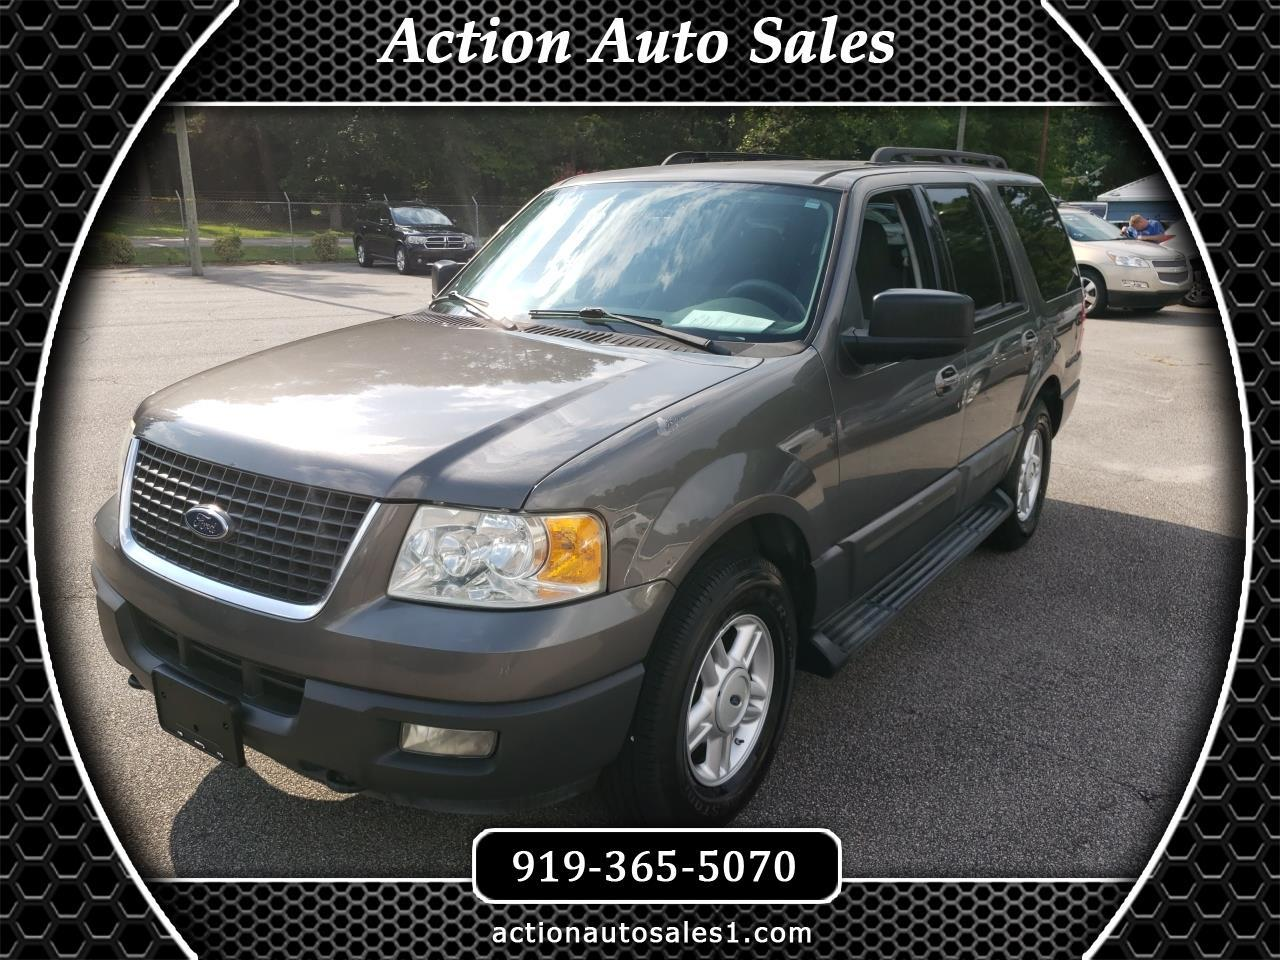 2005 Ford Expedition $899